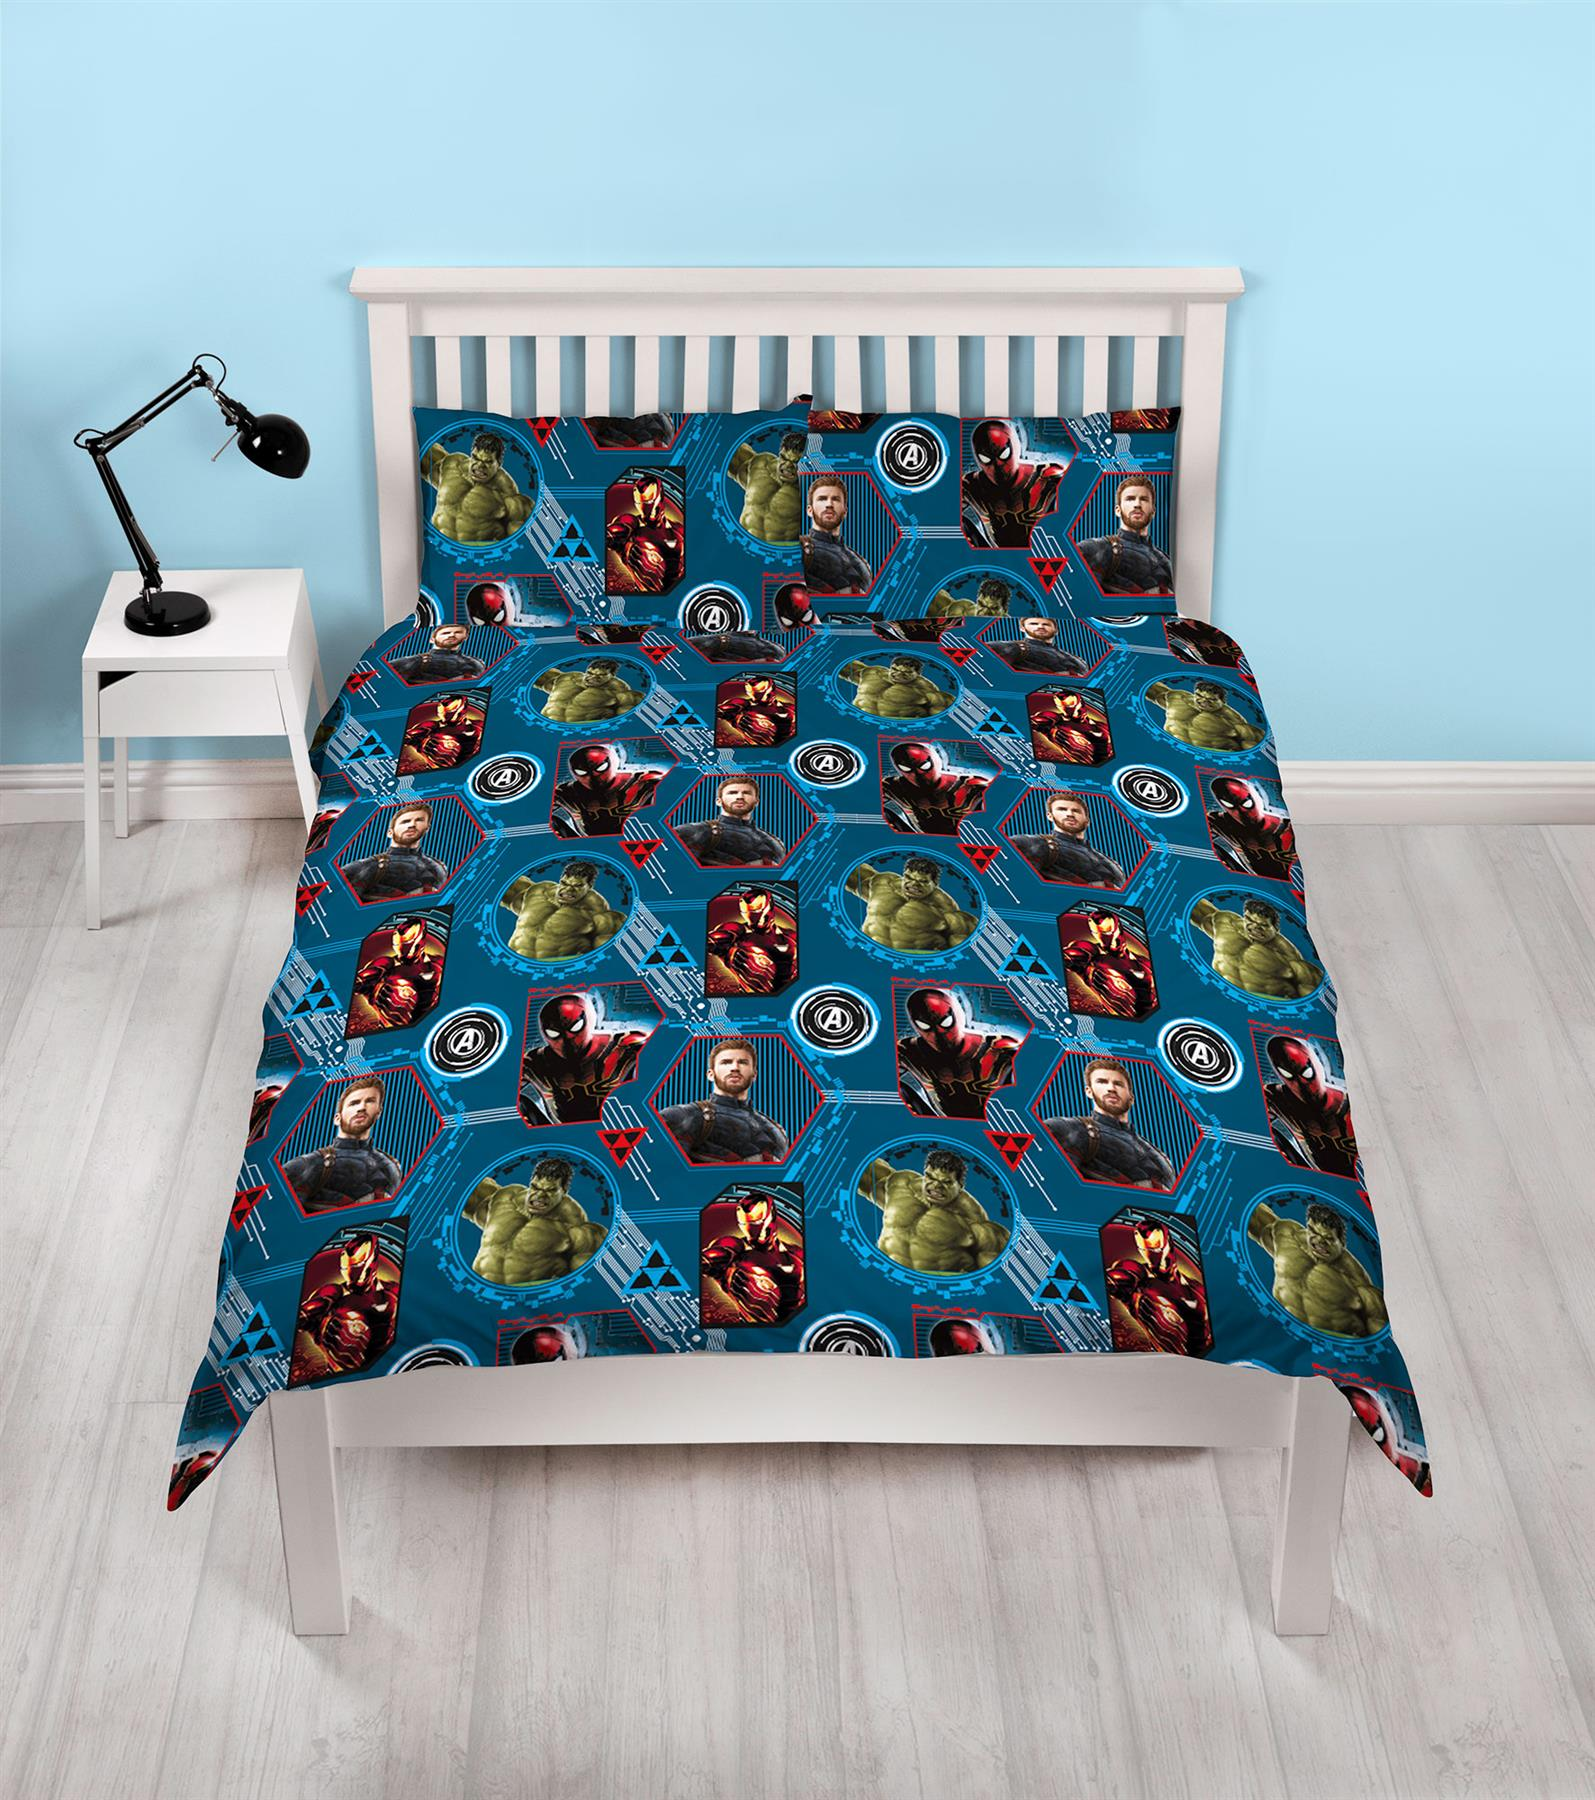 Official-Marvel-Comics-Avengers-Licensed-Duvet-Covers-Single-Double thumbnail 3